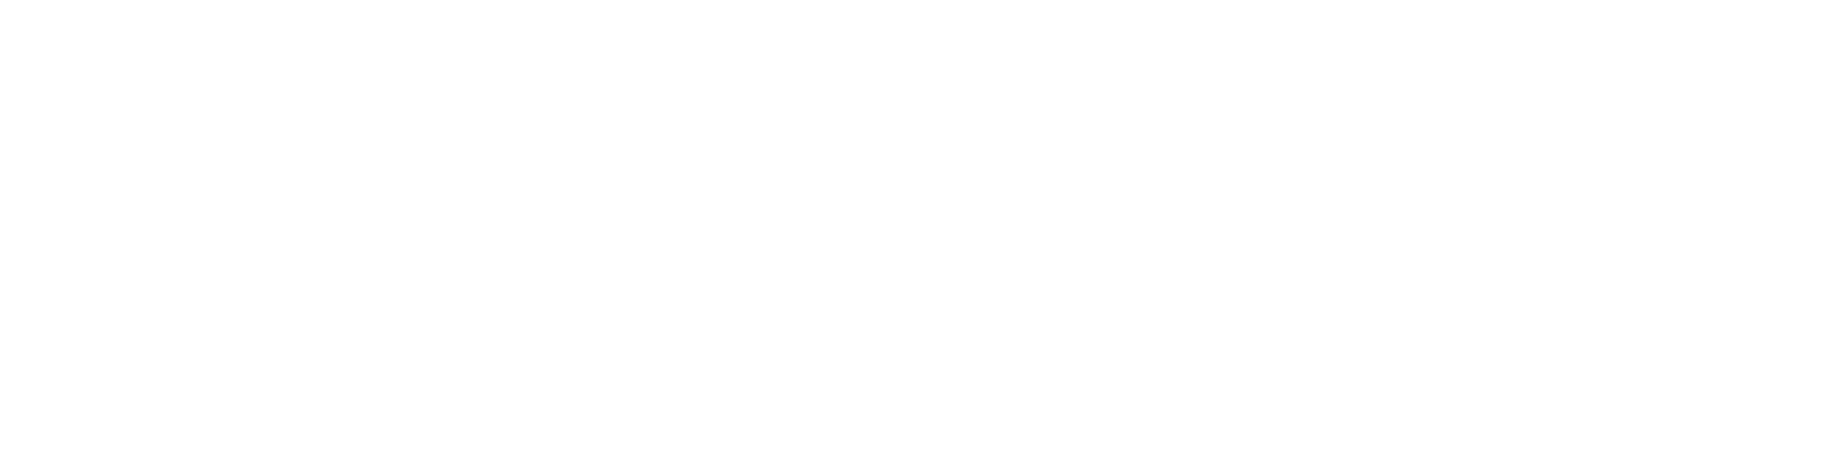 """nocturnal glamour has never looked so good"" - WWD"